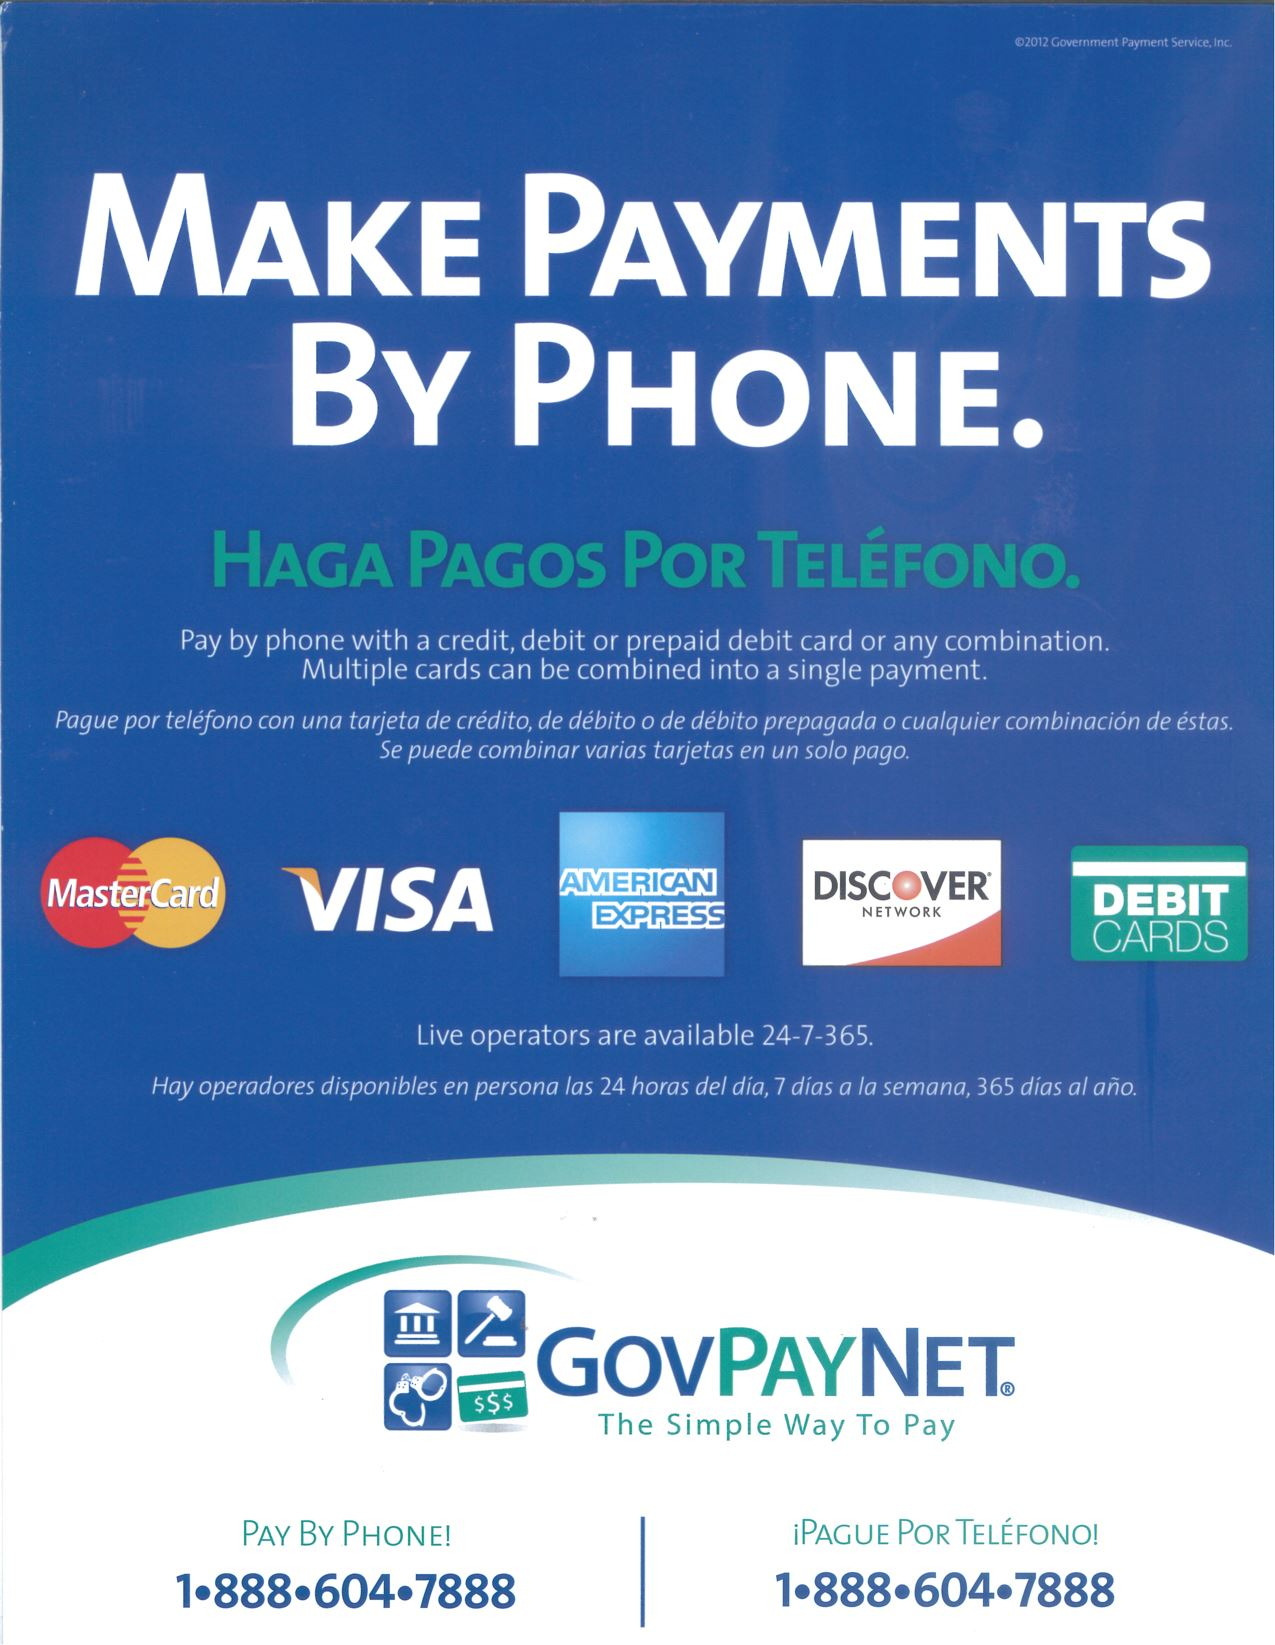 Make Payments by Phone Flyer